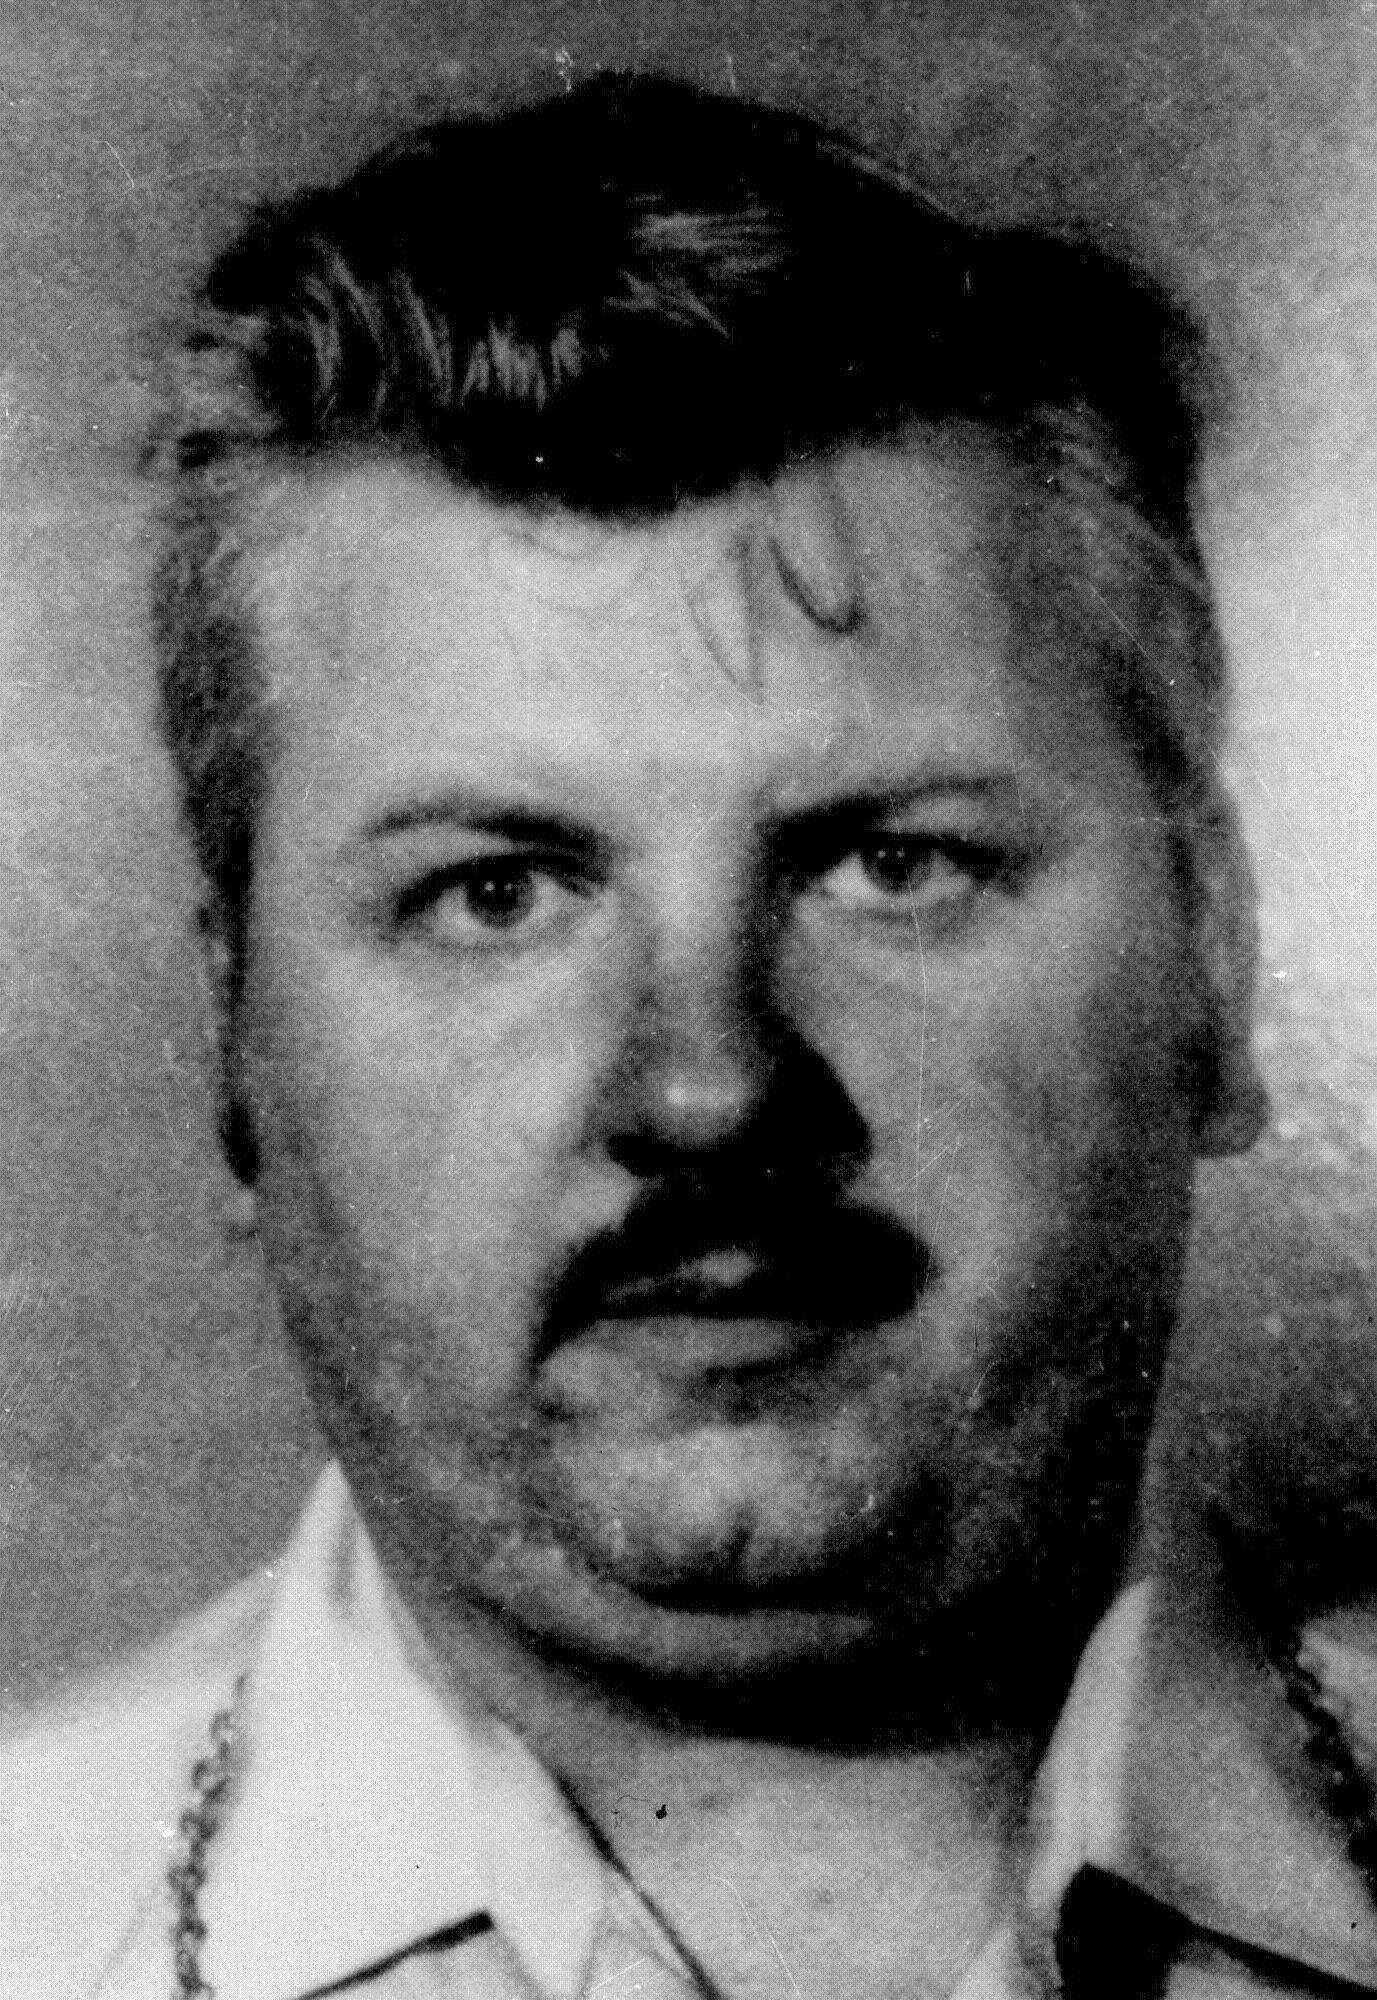 Sheriff wants to re-examine site for Gacy victims